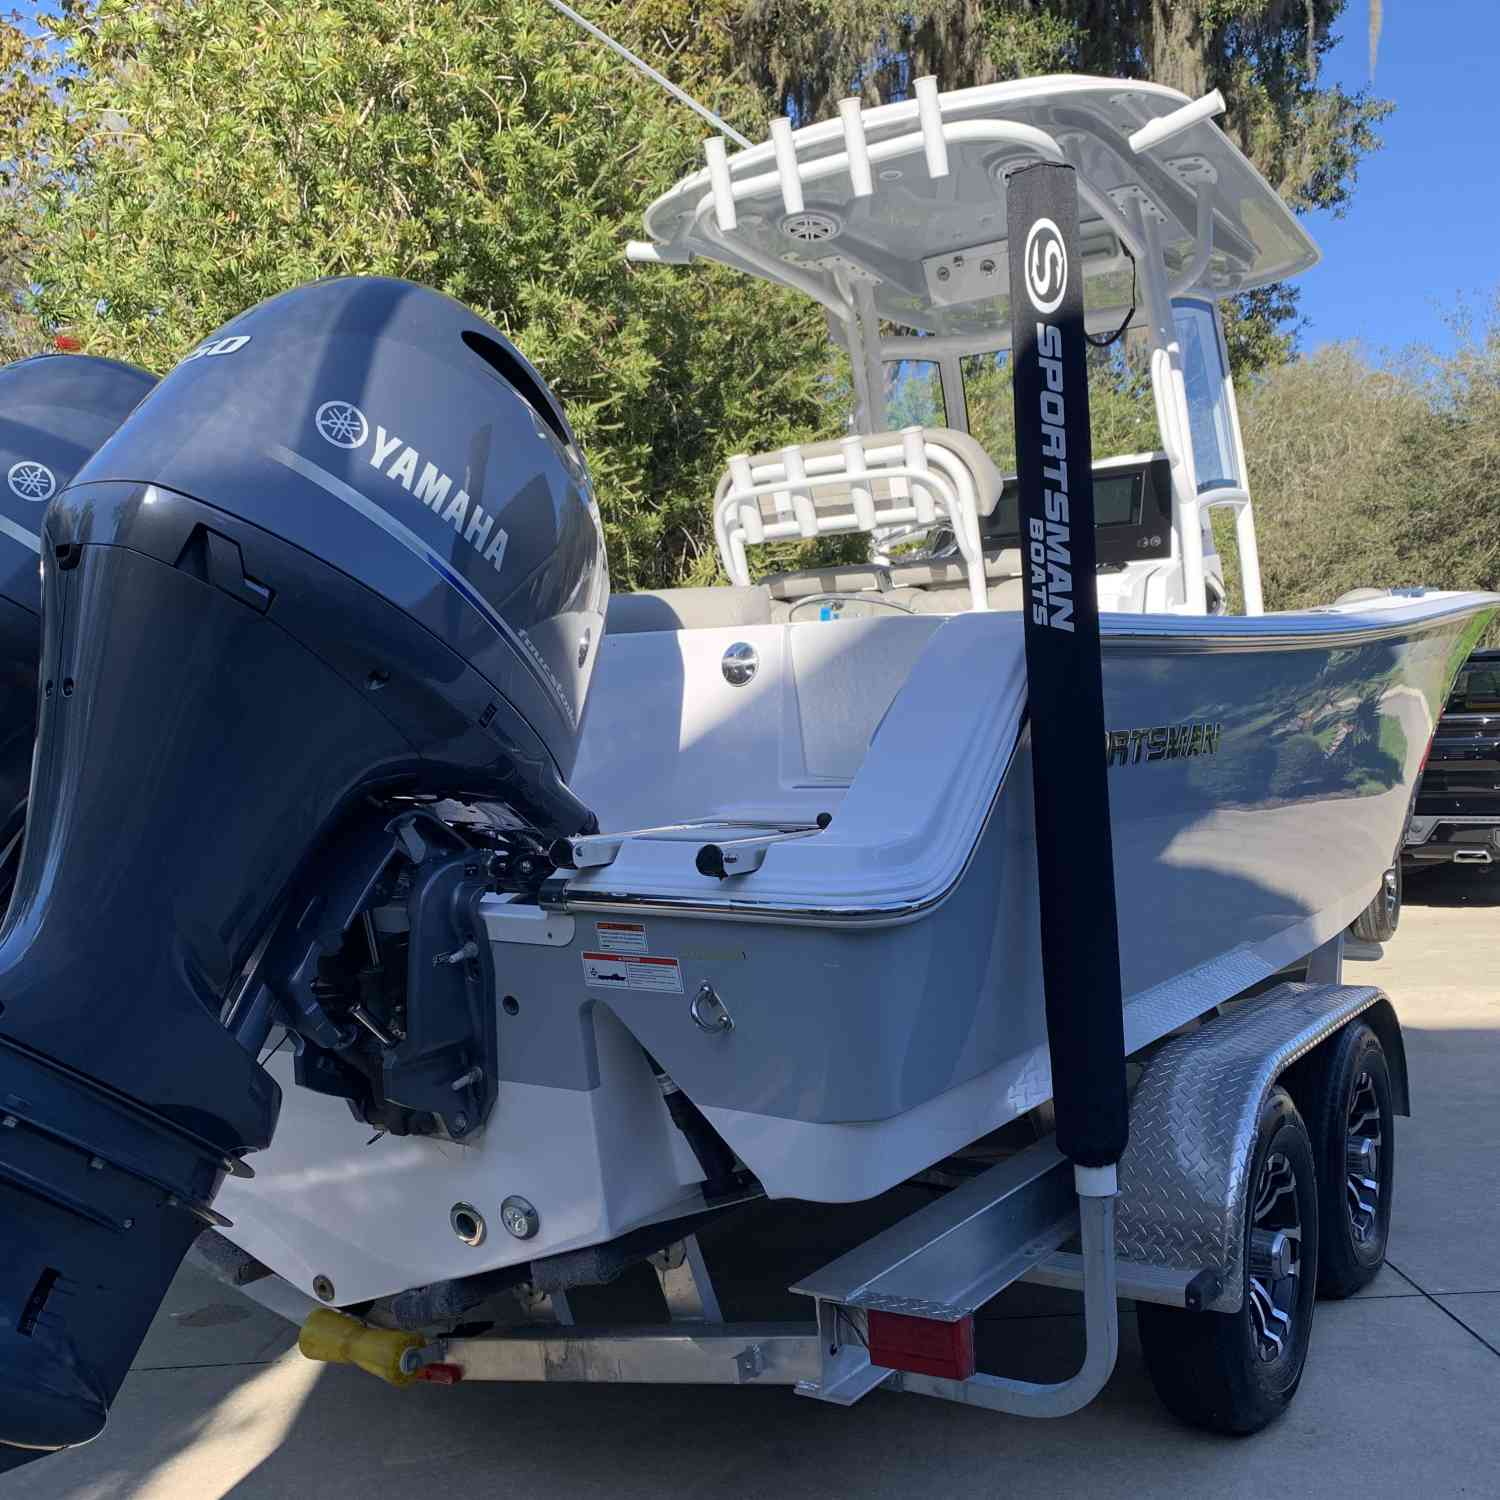 Title: Sitting clean and pretty in the driveway! - On board their Sportsman Open 252 Center Console - Location: Julington creek Florida. Participating in the Photo Contest #SportsmanMarch2021